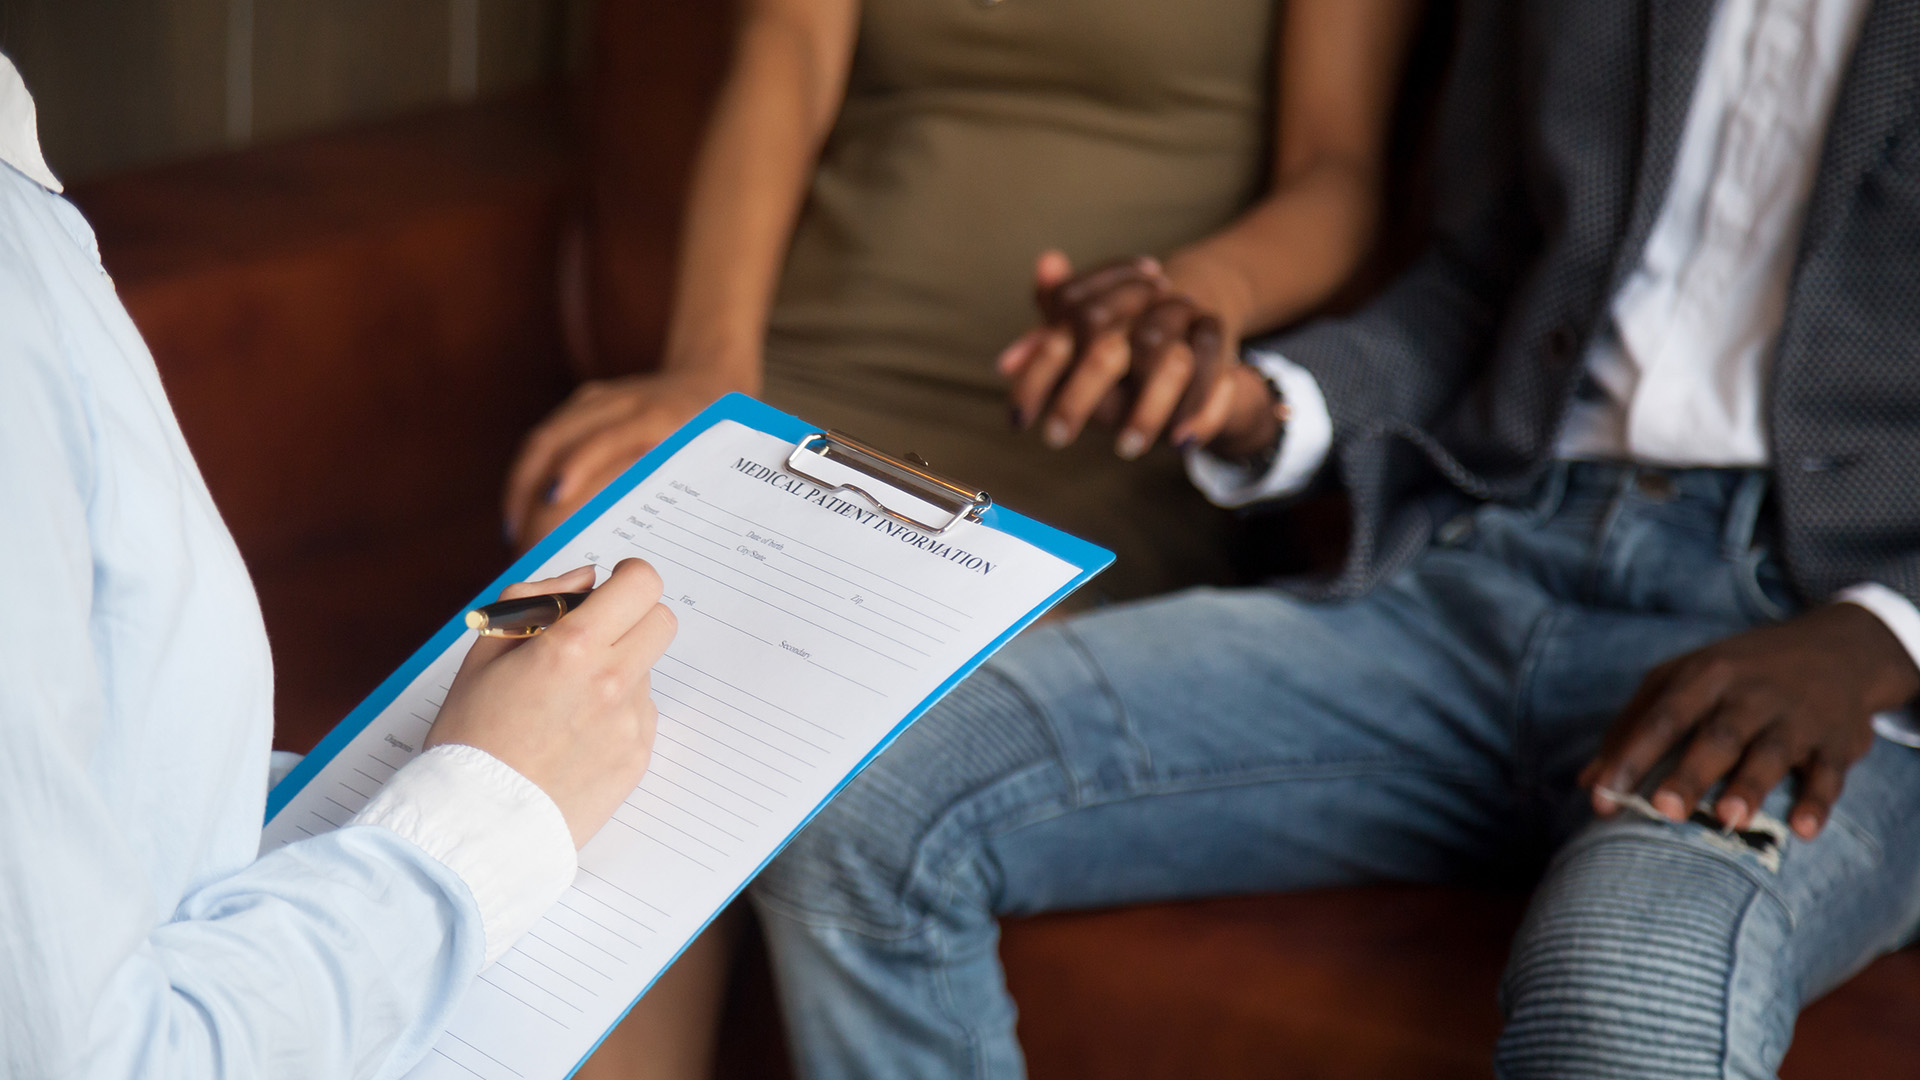 Ashley Eskew, MD, MSCI an OB/GYN and Reproductive Endocrinologist and Infertility Specialist (REI) at Atrium Health Women's Institute shares answers to some of the most commonly asked questions regarding our capabilities for treating fertility patients during this time.